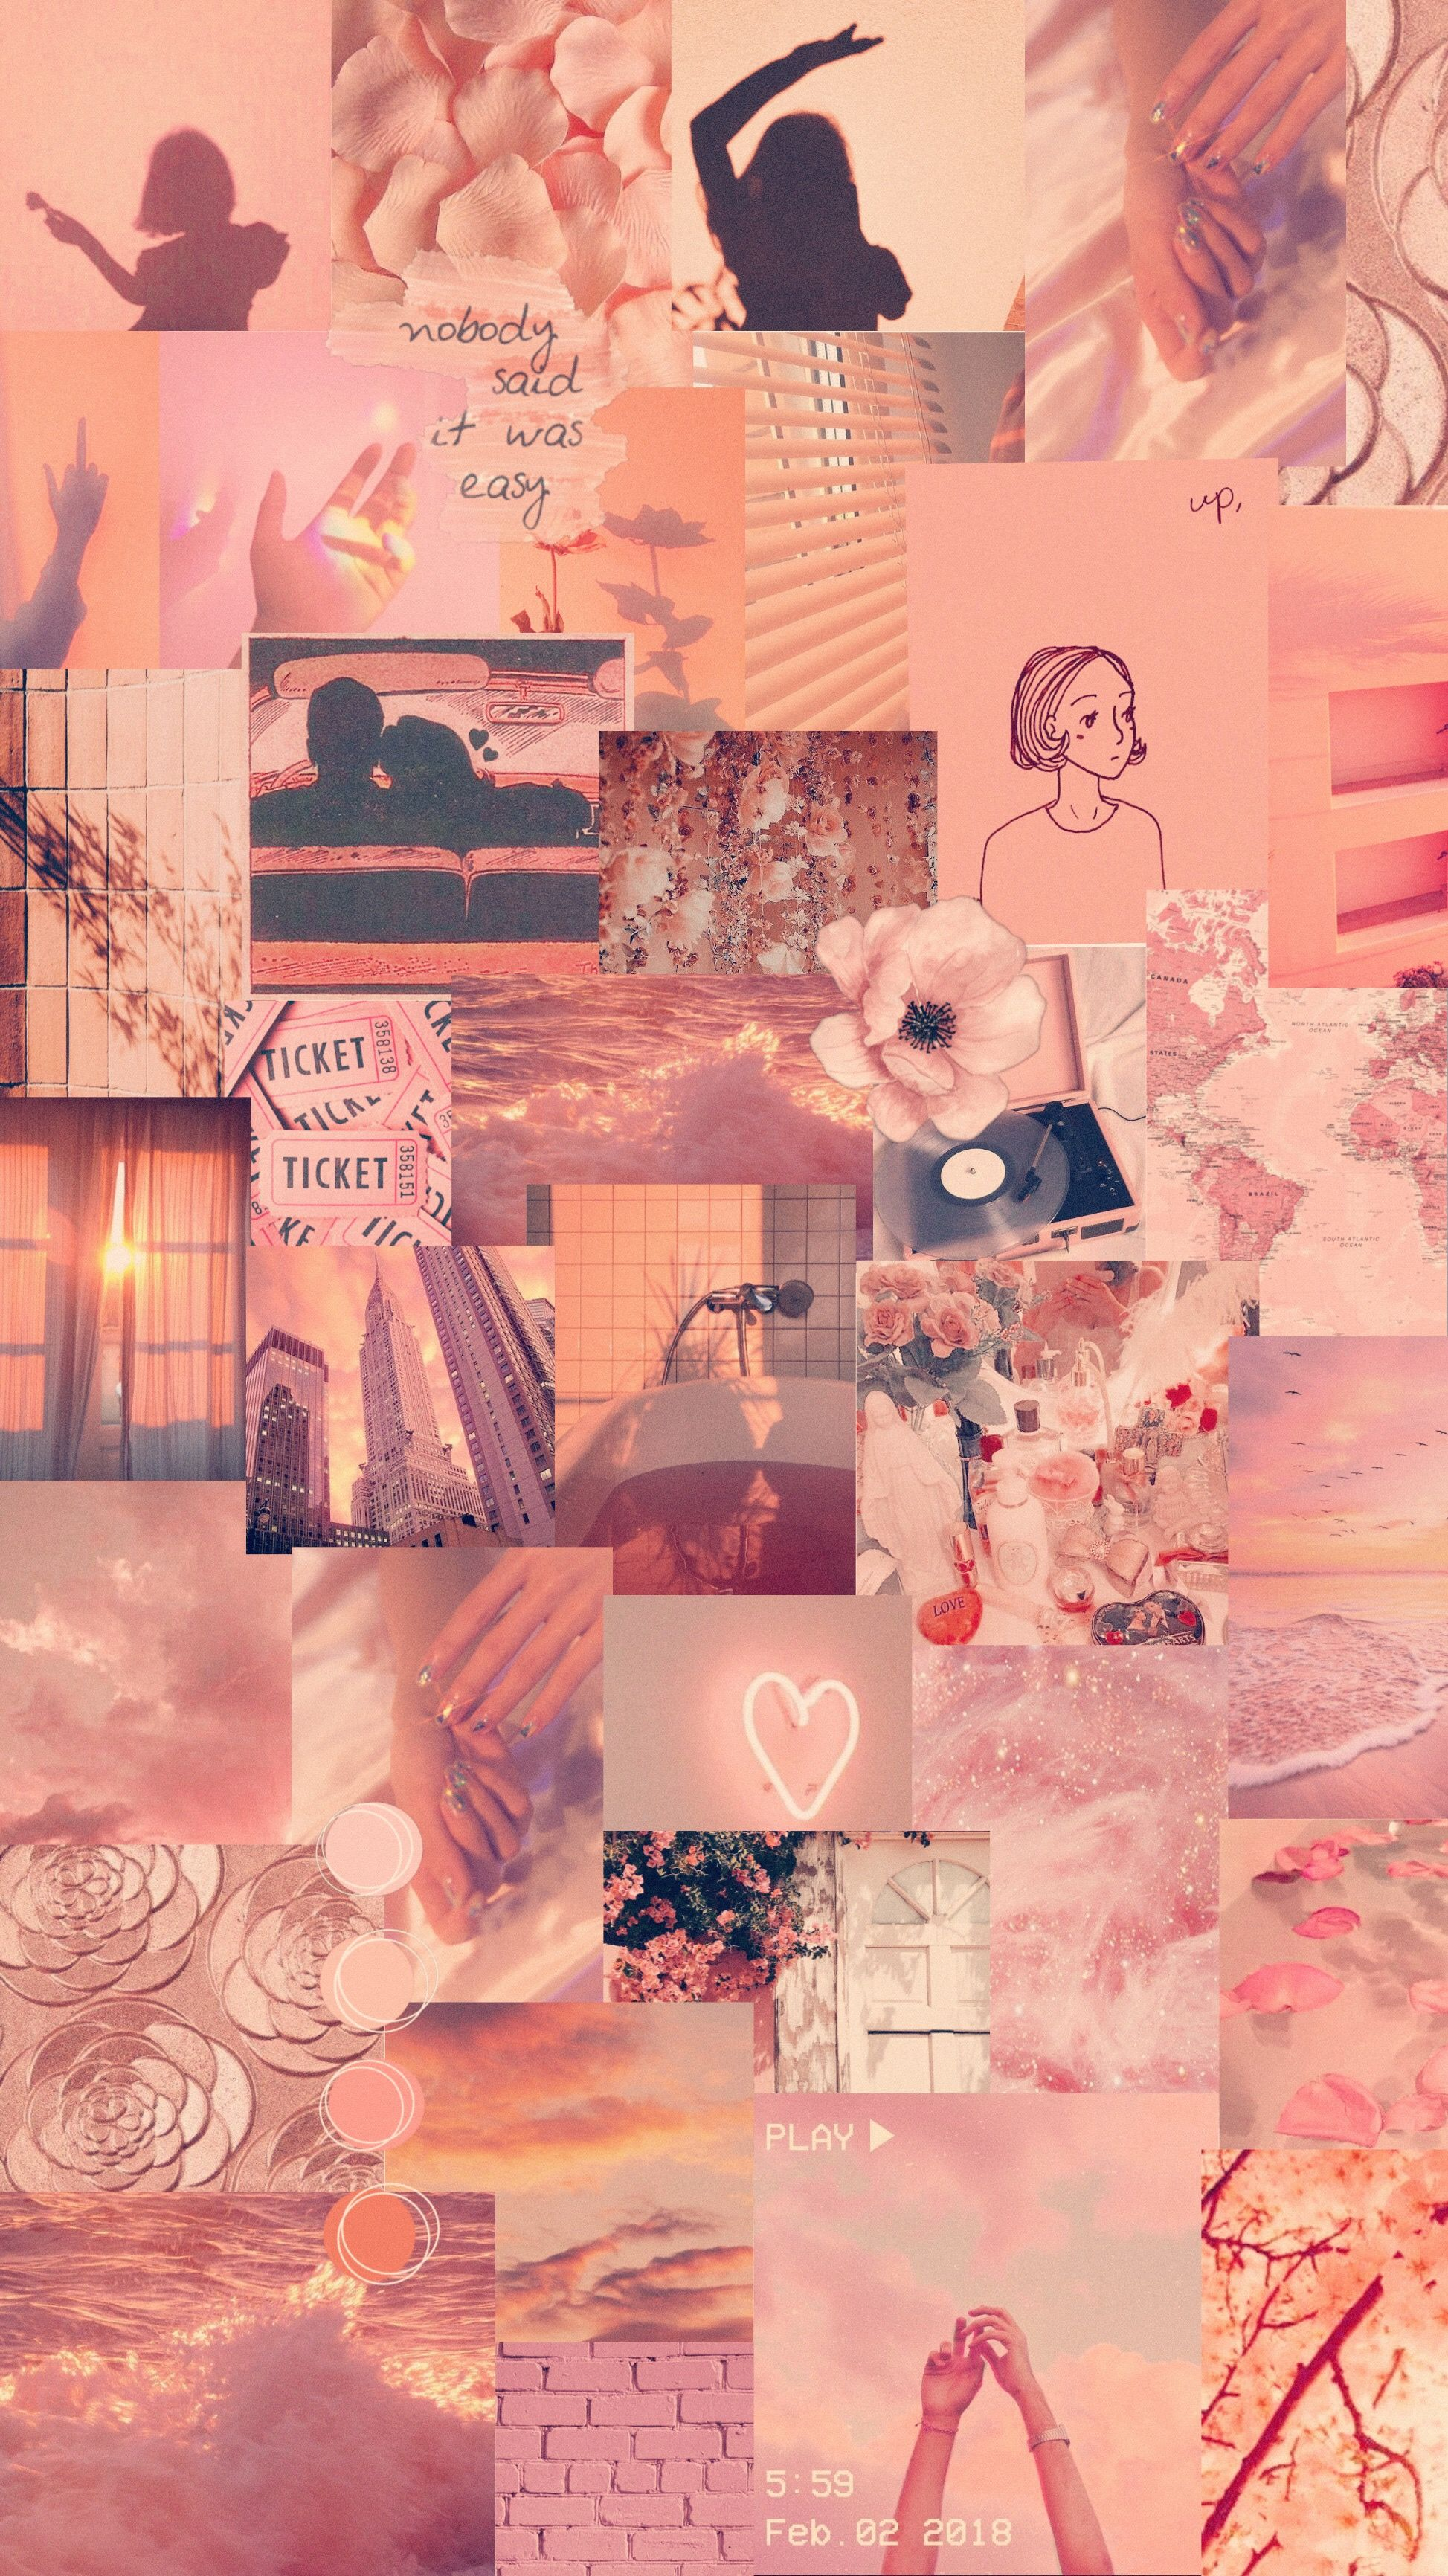 peach retro pink collage aesthetic rosegold travel